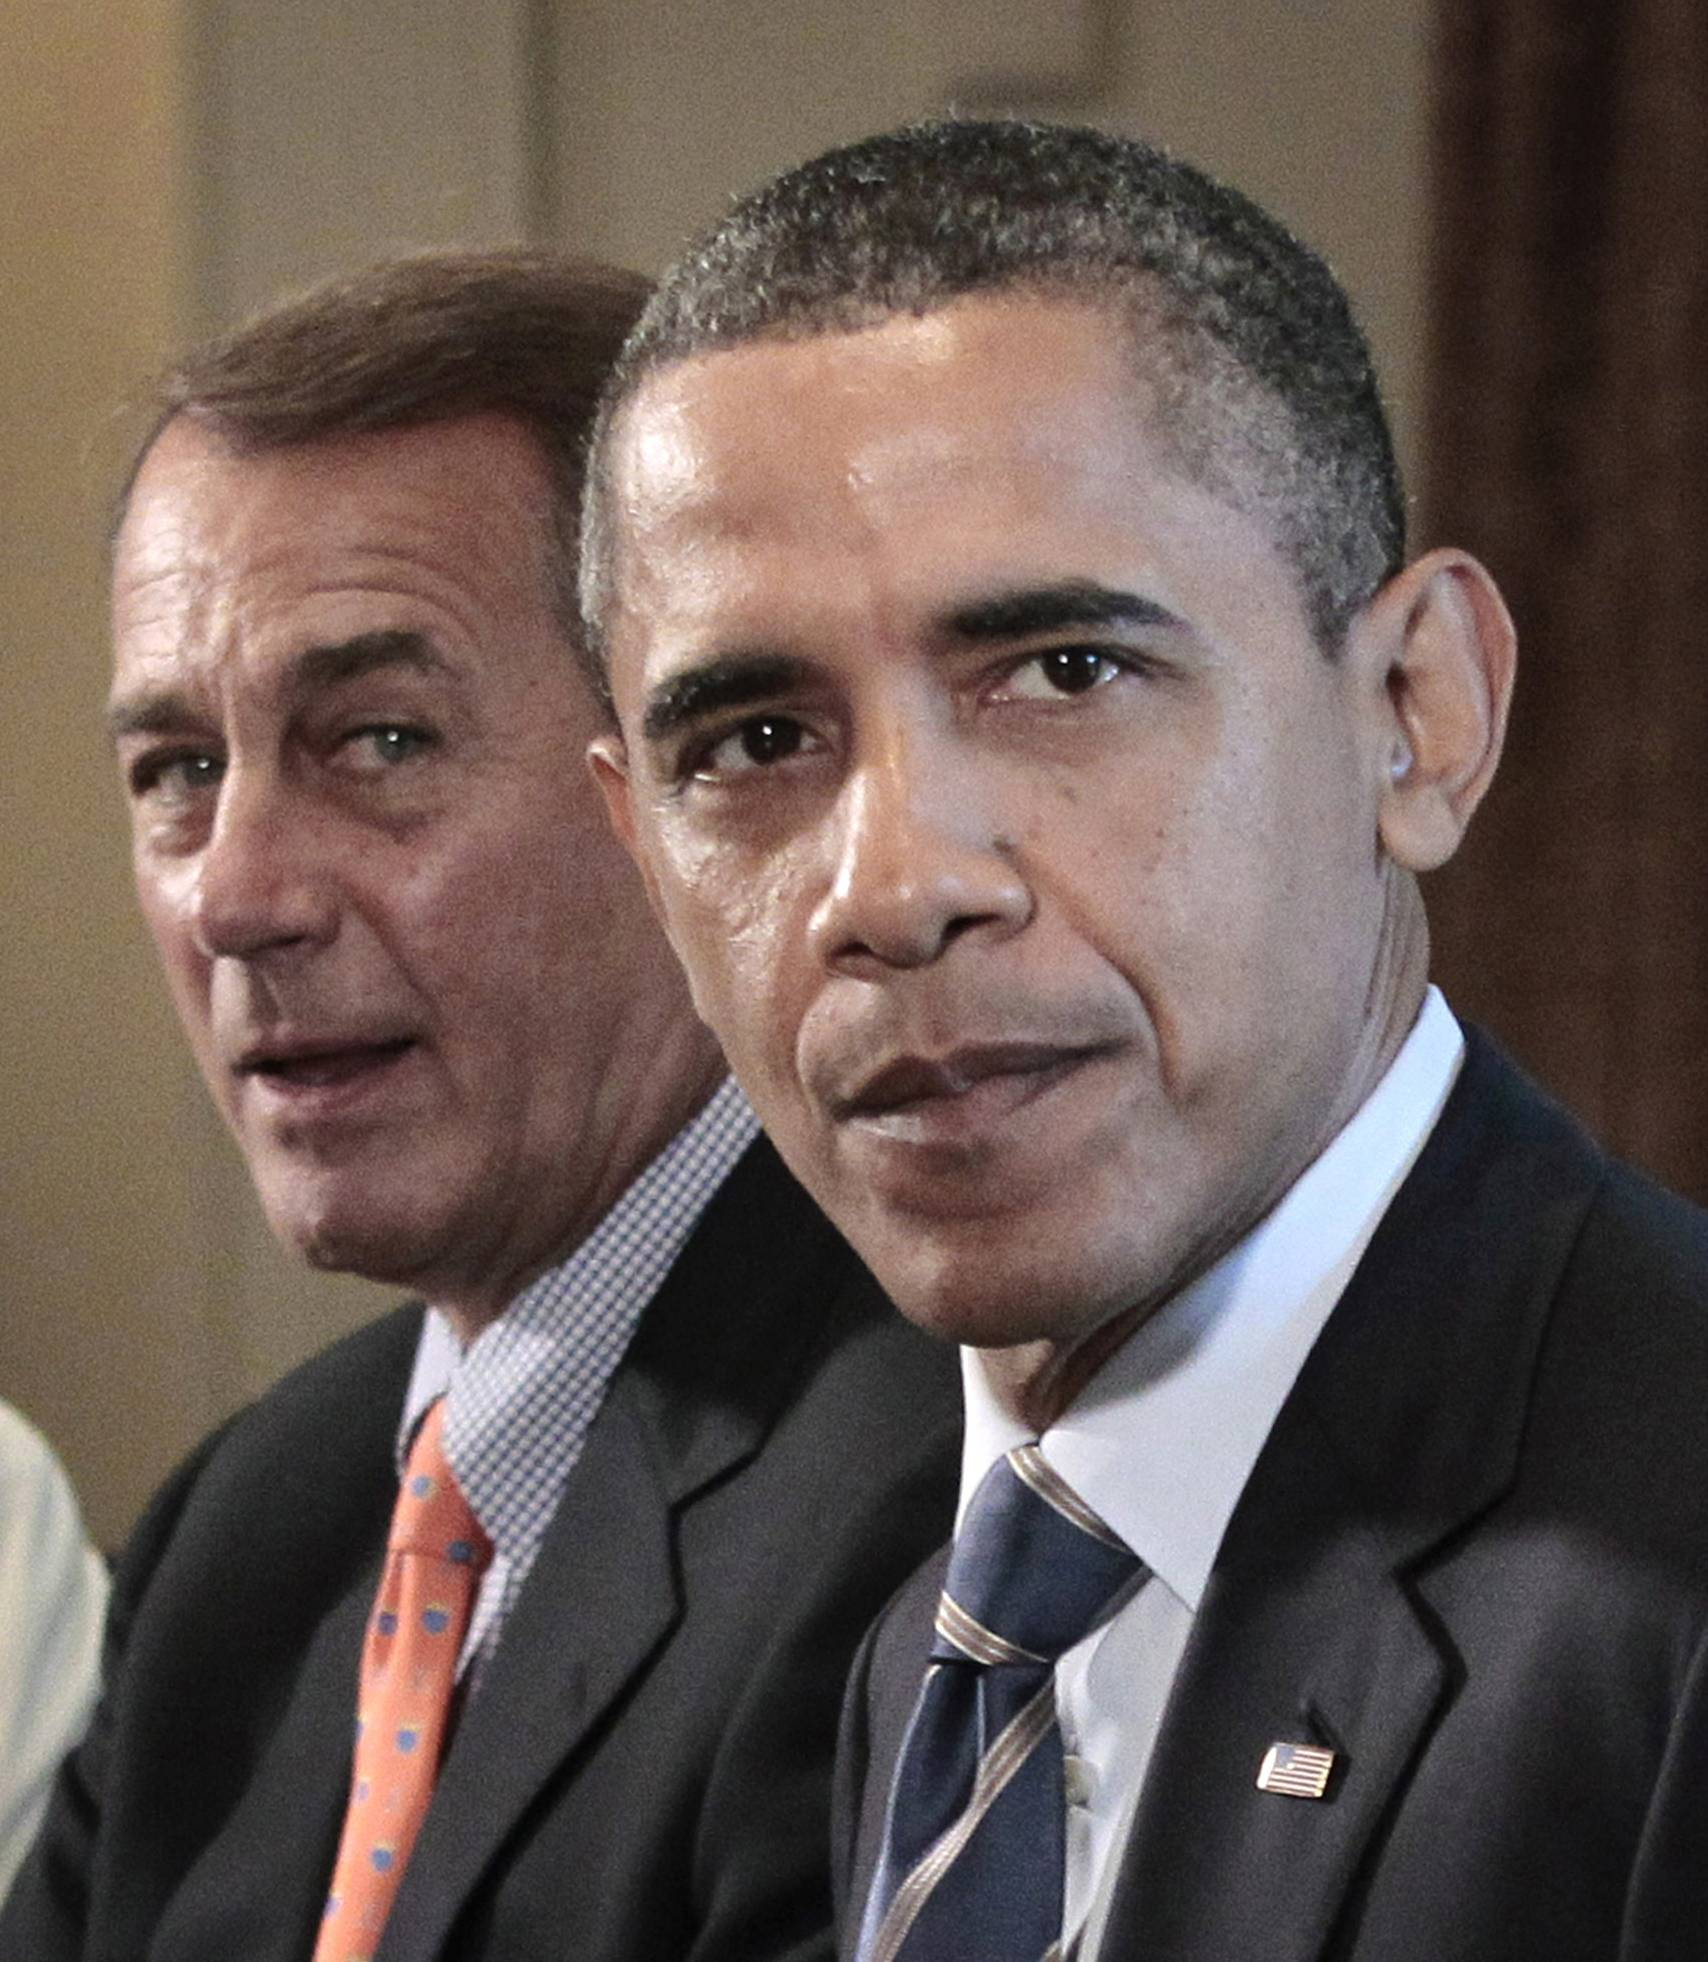 Racing the debt clock, Congress is working on dual tracks while President Barack Obama, shown here with Ohio Republican John Boehner, appeals to the public in hopes of influencing a deal that talks have failed to produce so far.